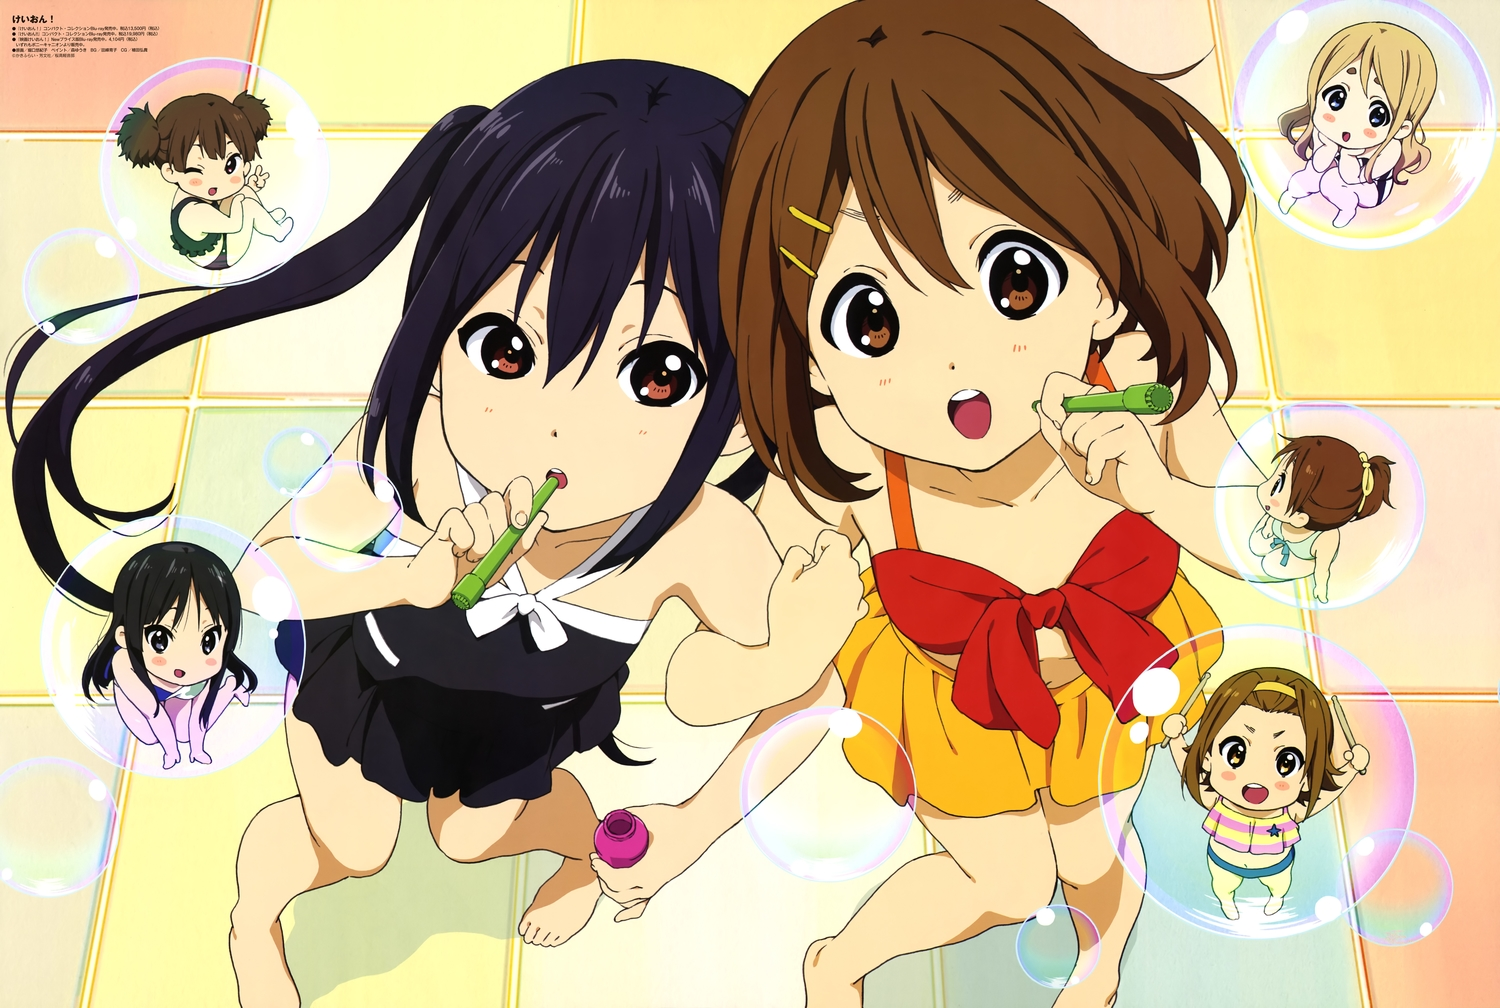 akiyama_mio barefoot bikini black_hair blush brown_eyes brown_hair bubbles chibi group hirasawa_ui hirasawa_yui k-on! kotobuki_tsumugi long_hair nakano_azusa scan short_hair skirt suzuki_jun swimsuit tagme_(artist) tainaka_ritsu twintails wink